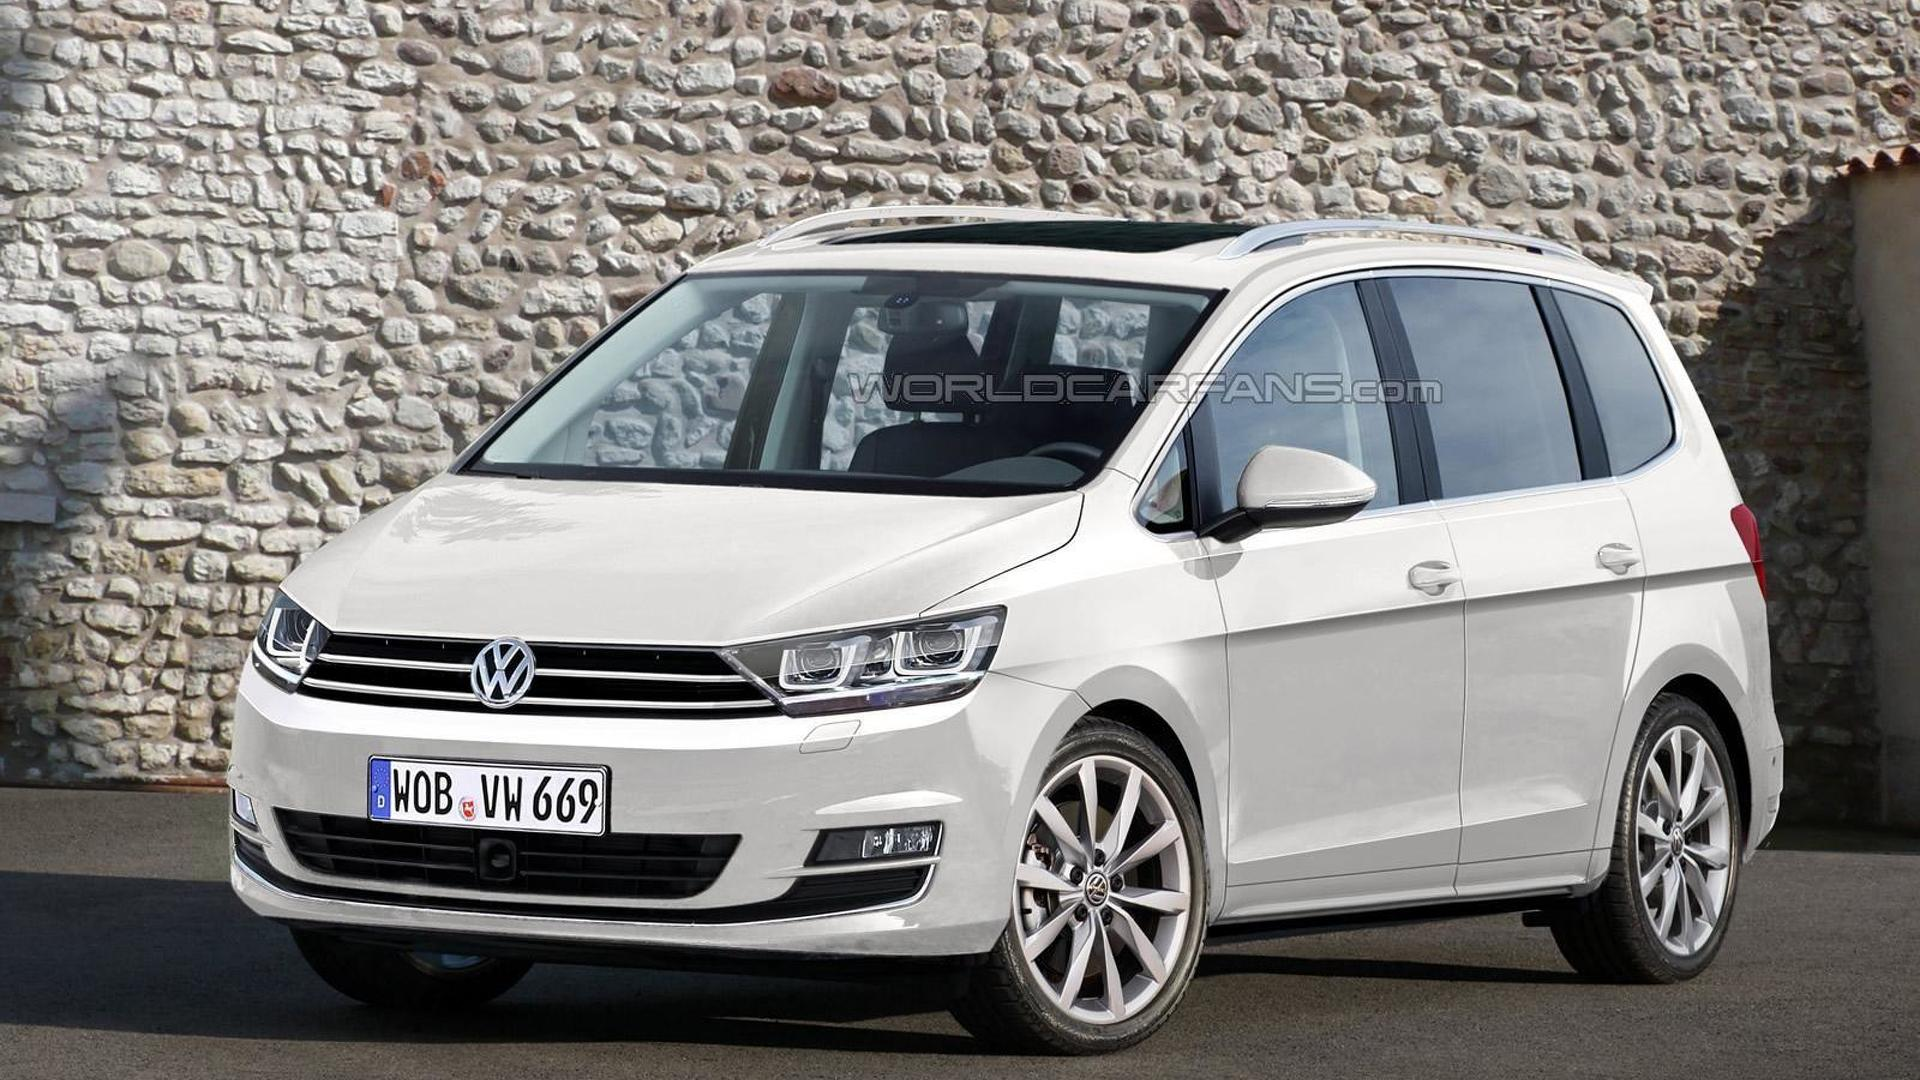 2016 volkswagen touran render shows what to expect. Black Bedroom Furniture Sets. Home Design Ideas